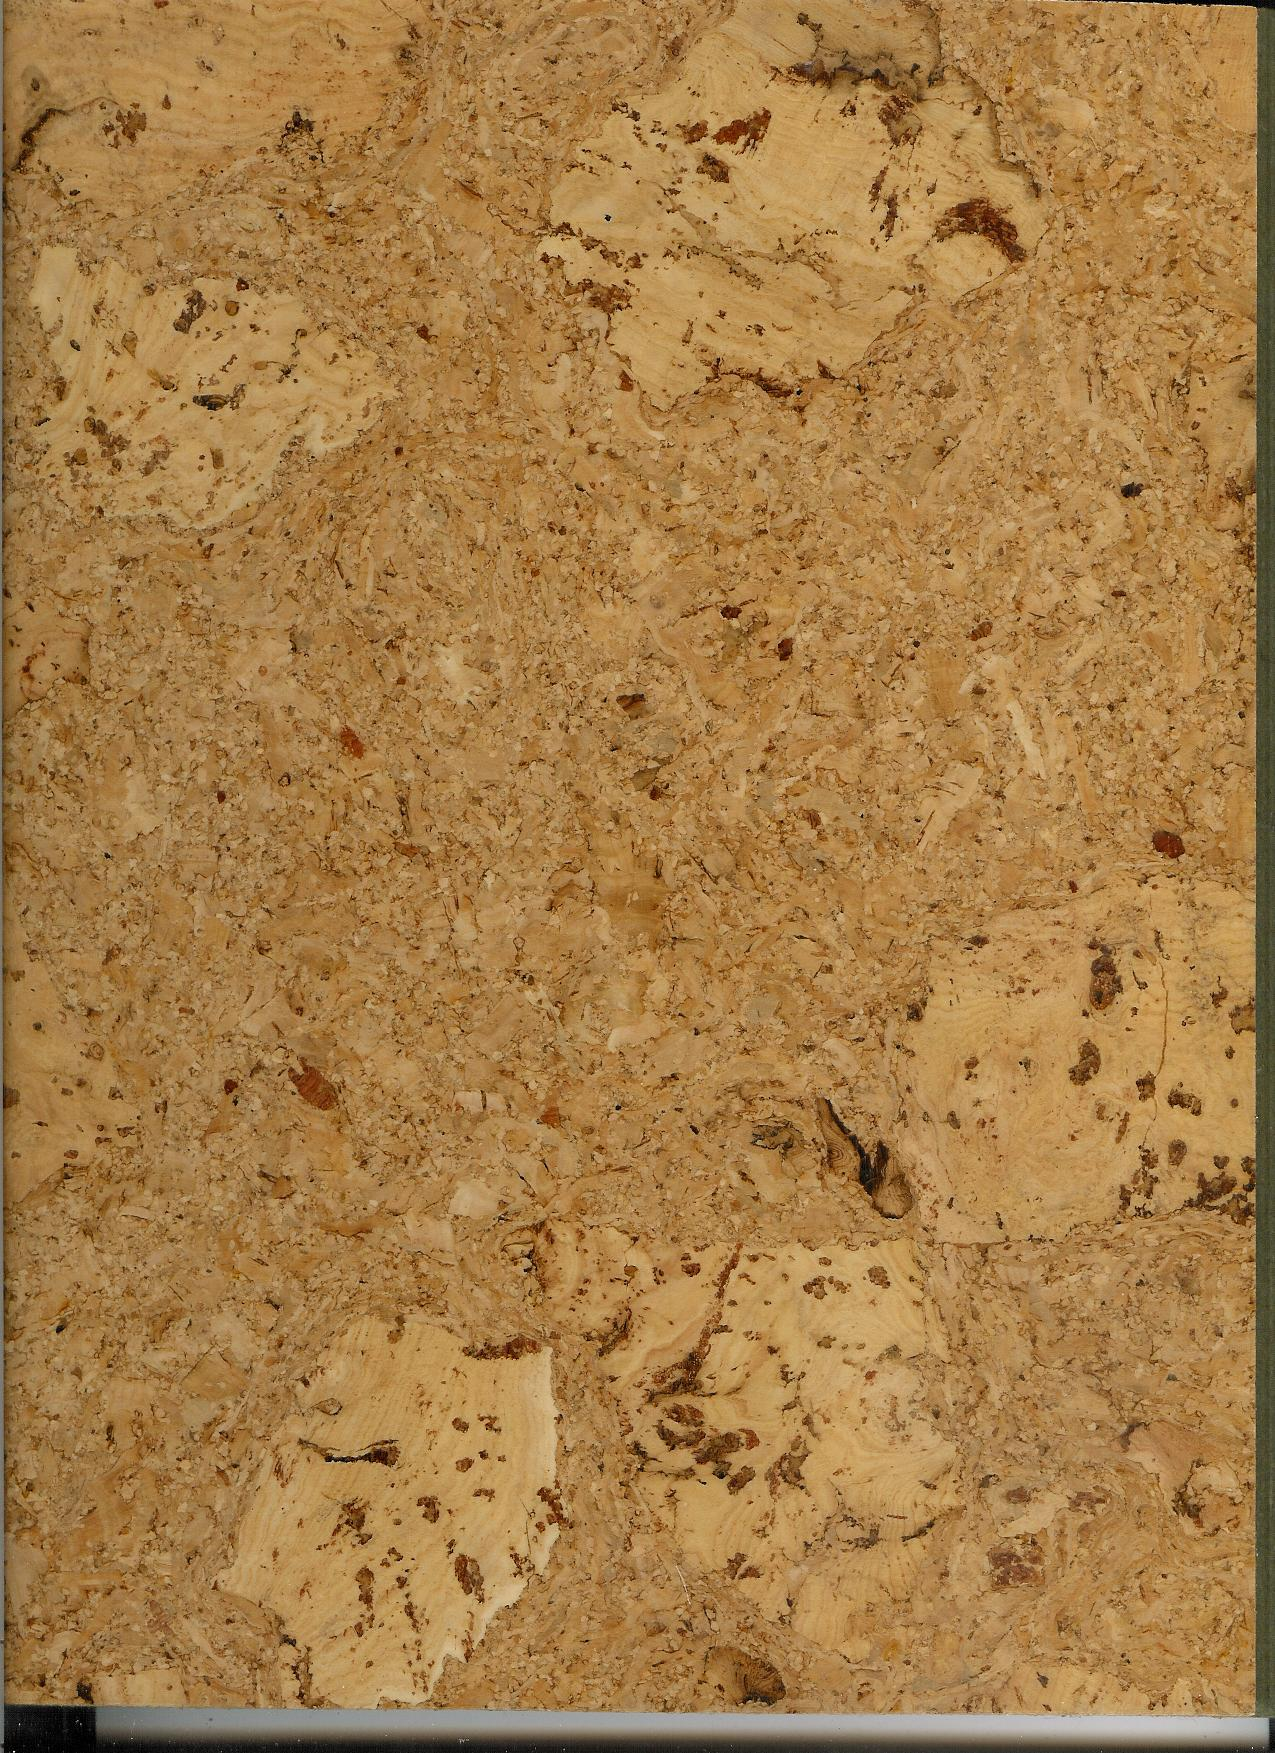 u-traditional-cork-tiles-canada-cork-tiles-ebay-cork-tiles-edmonton-cork-tiles-edinburgh-cork-tiles-exeter-cork-flooring-edmonton-sale-cork-flooring-eco-friendly-cork-flooring-ebay